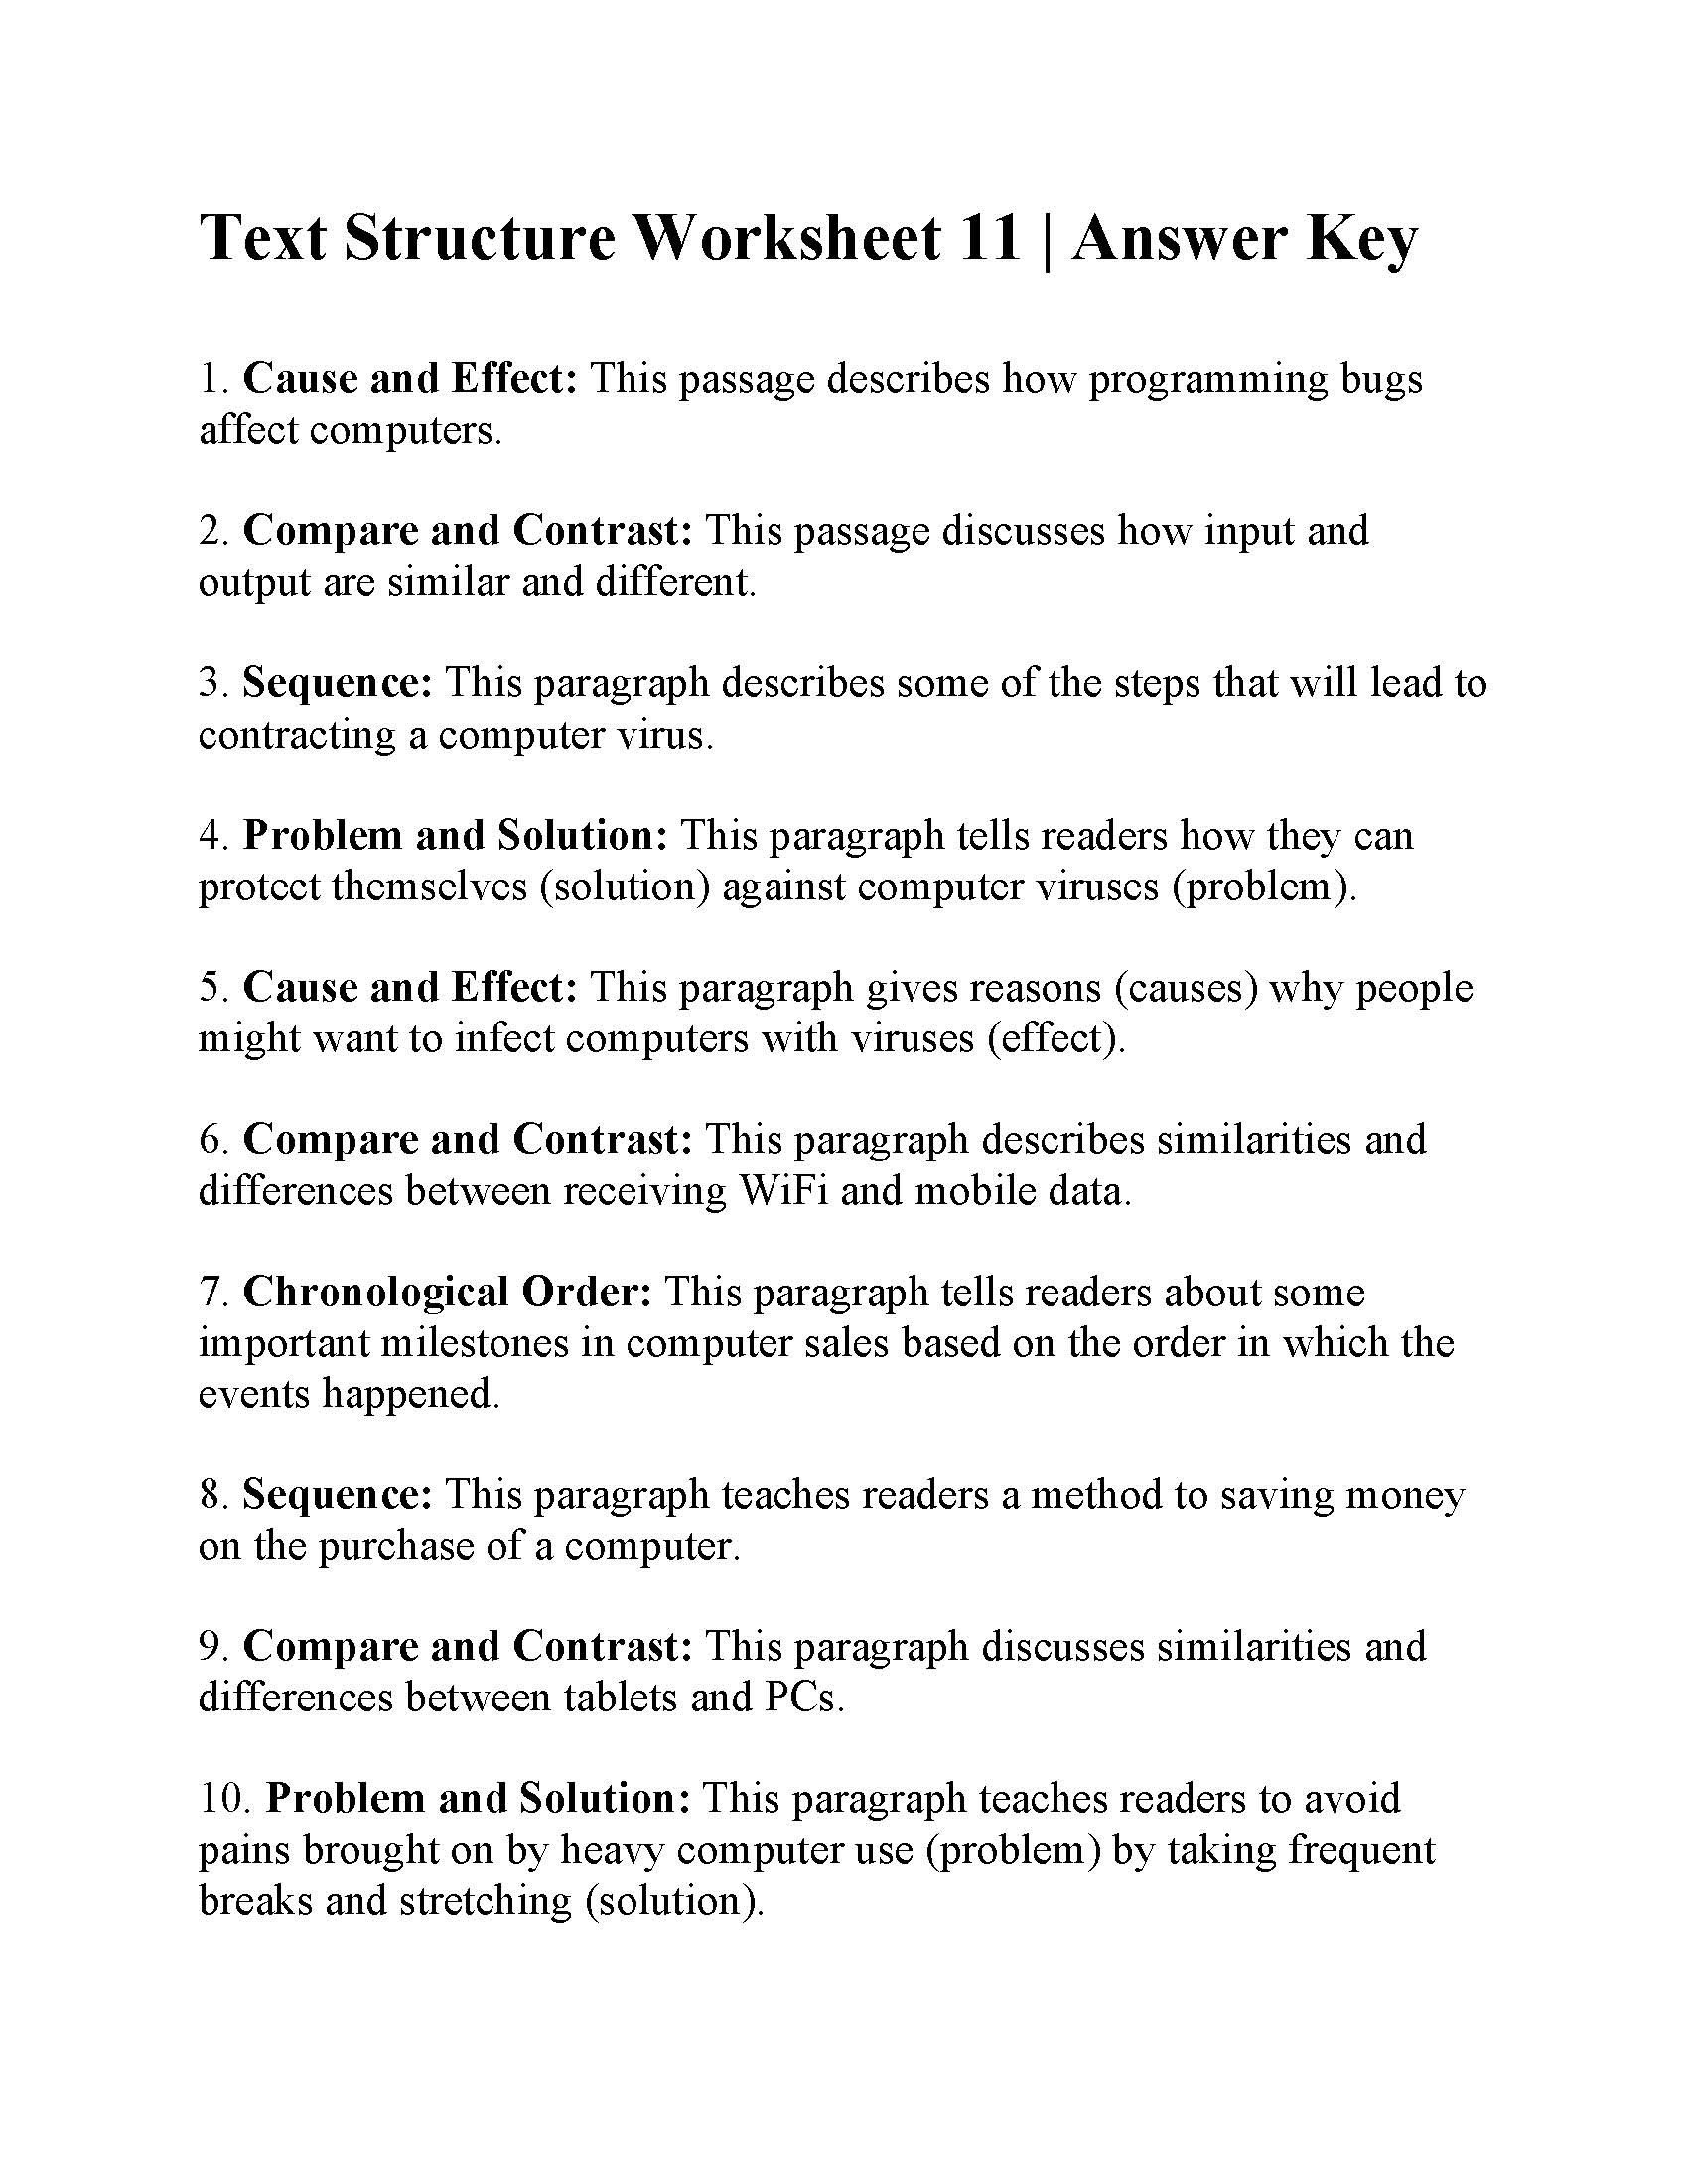 Text Structure Worksheets Grade 4 Text Structure Worksheet 11